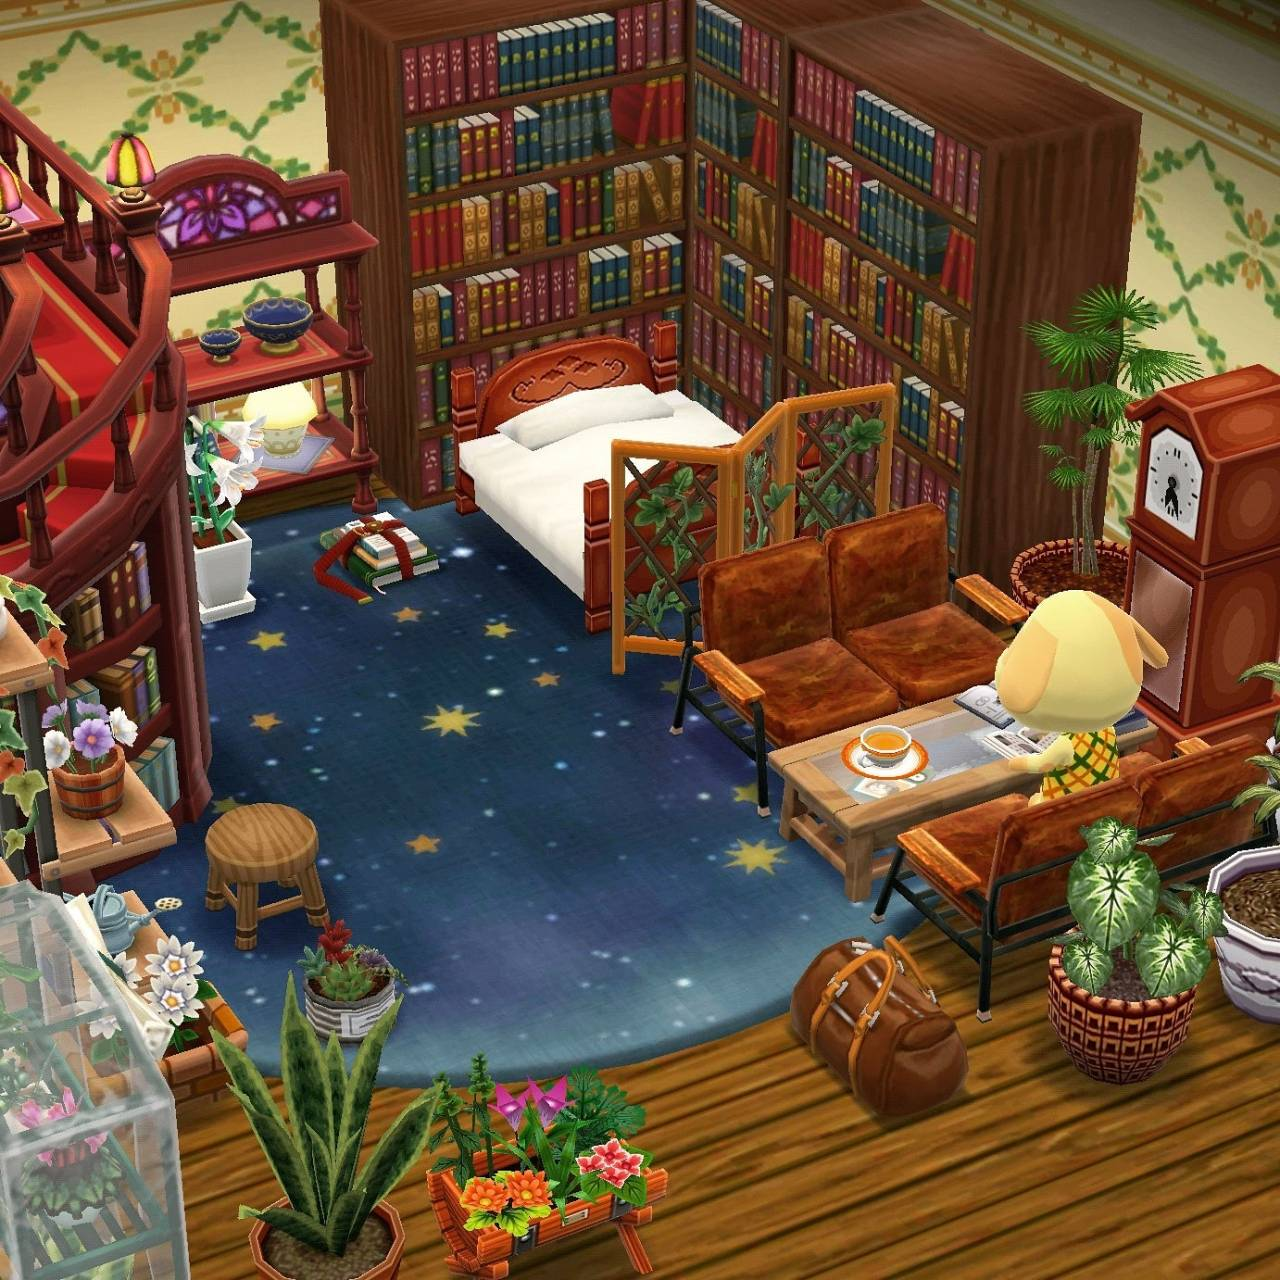 Animal Crossing Room Decoration Ideas on Animal Crossing Room Ideas New Horizons  id=52273